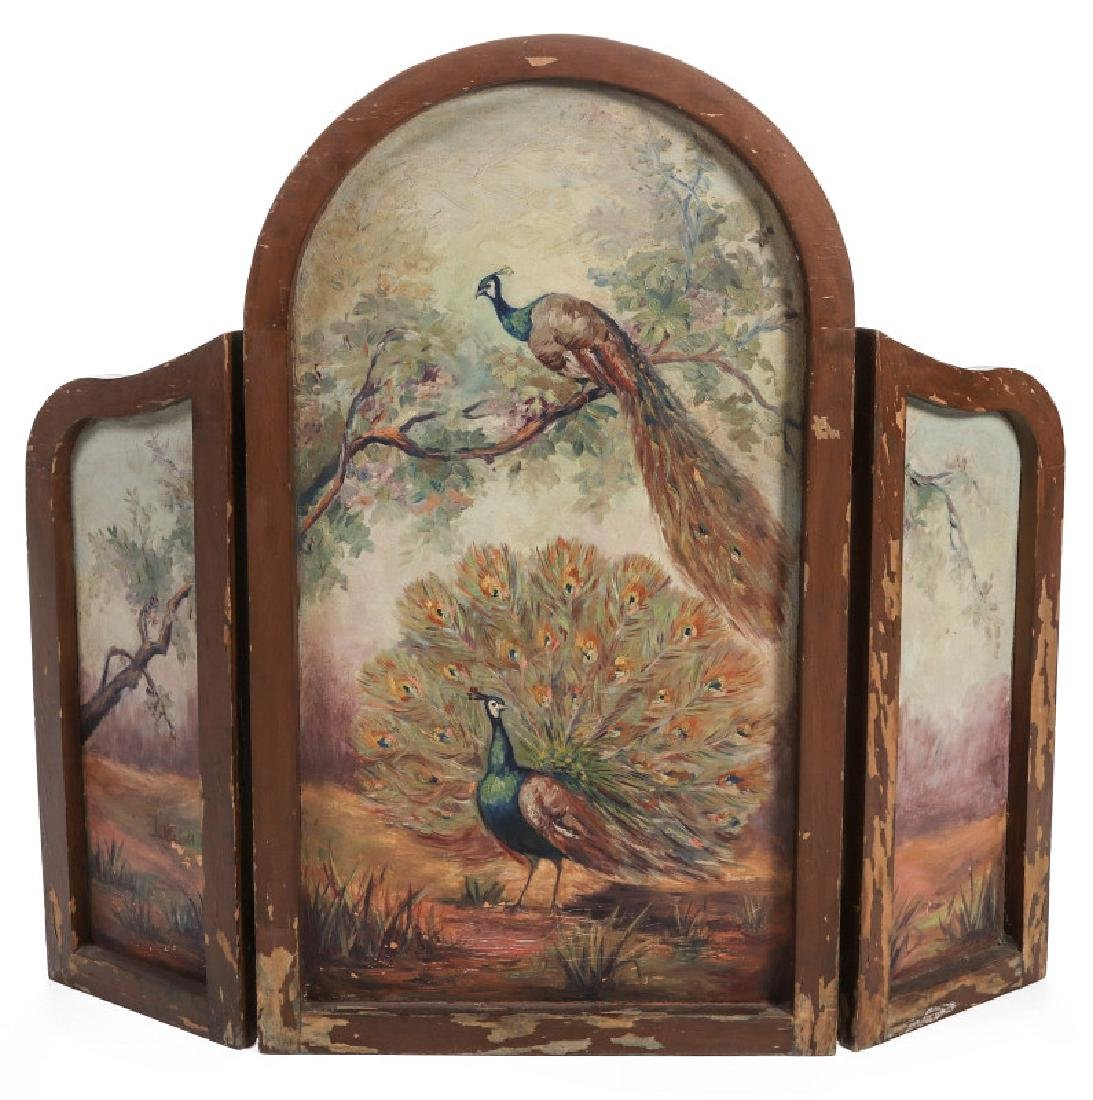 A CIRCA 1930s HAND PAINTED FIREPLACE SCREEN